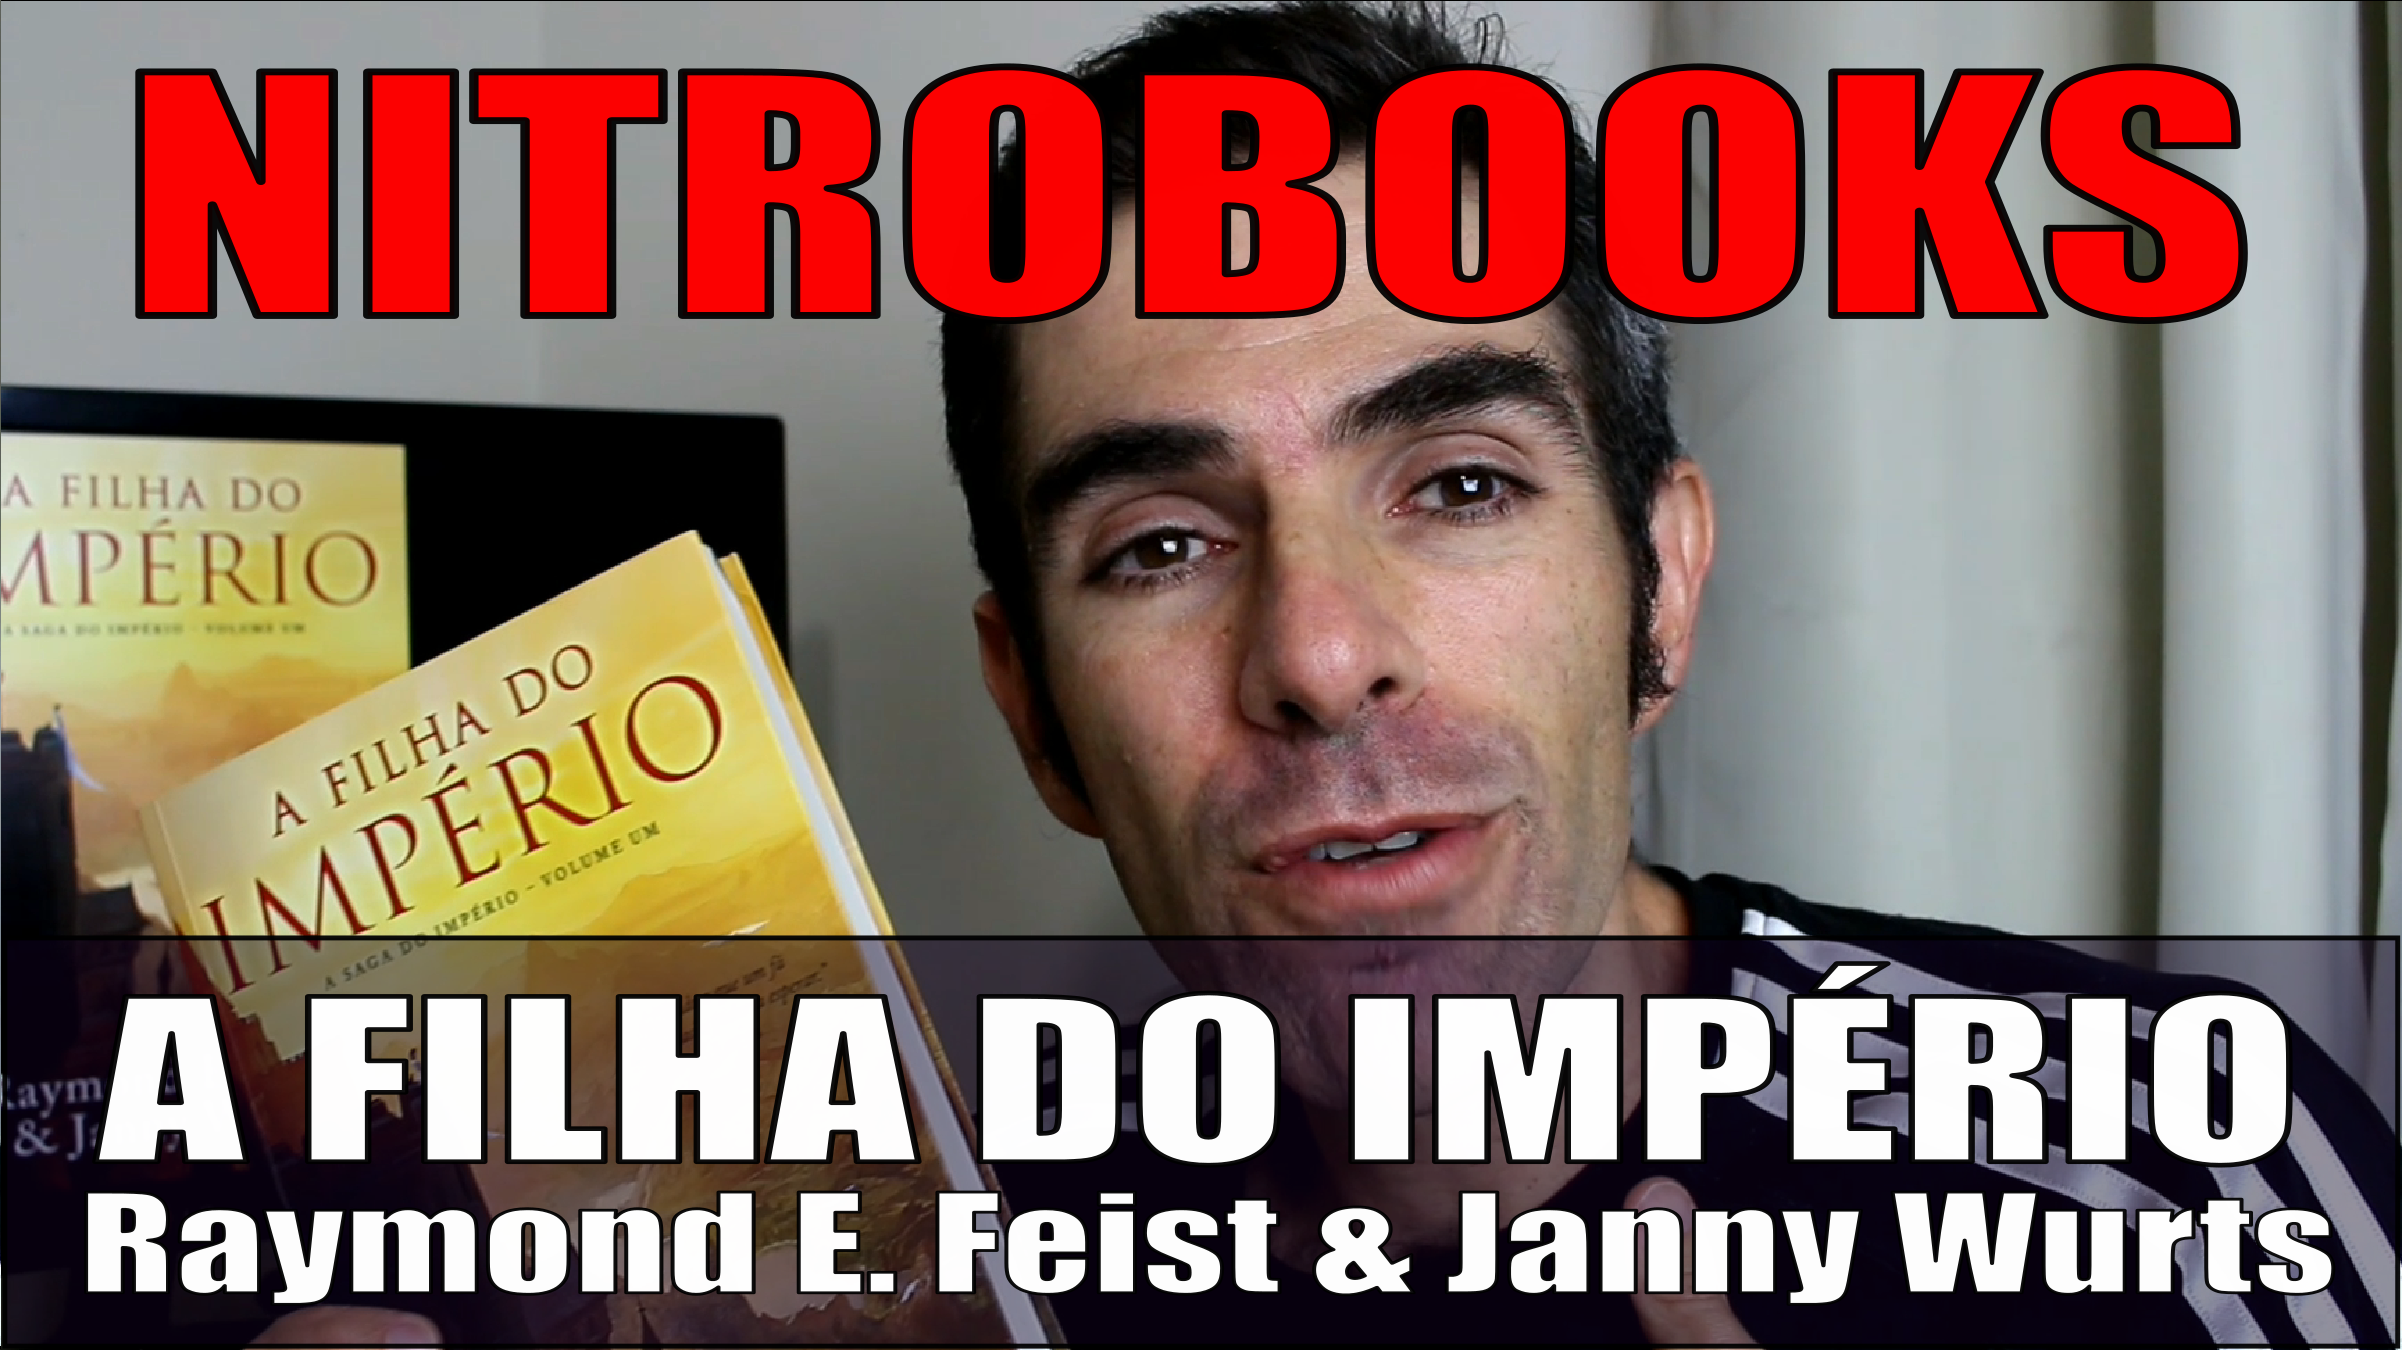 NITROBOOKS A FILHA DO IMPERIO FINAL